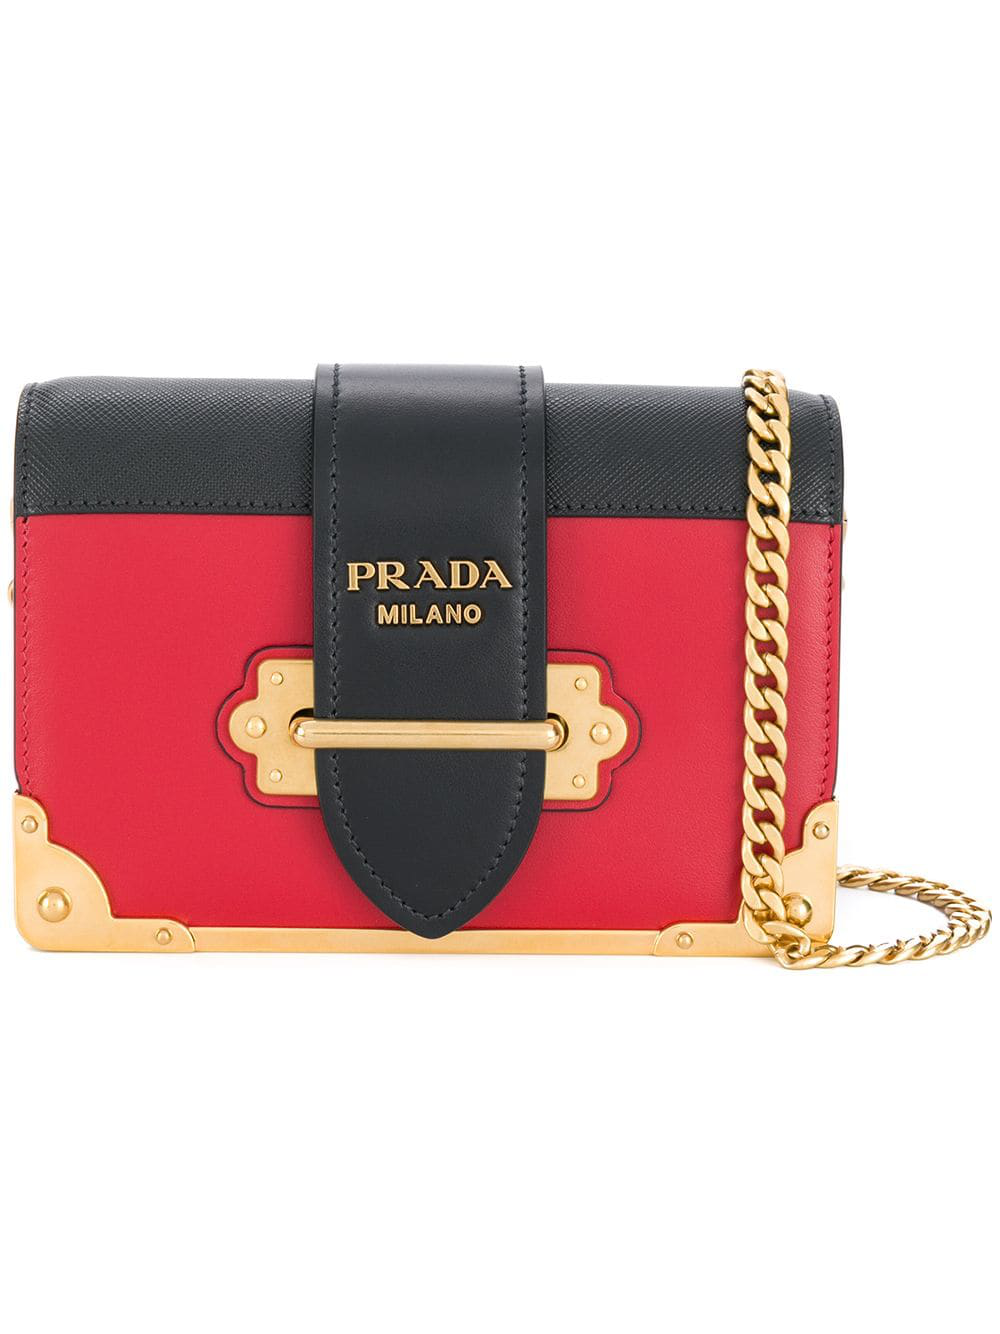 c72920b24a19 Prada Cahier Leather Shoulder Bag - Red | ModeSens